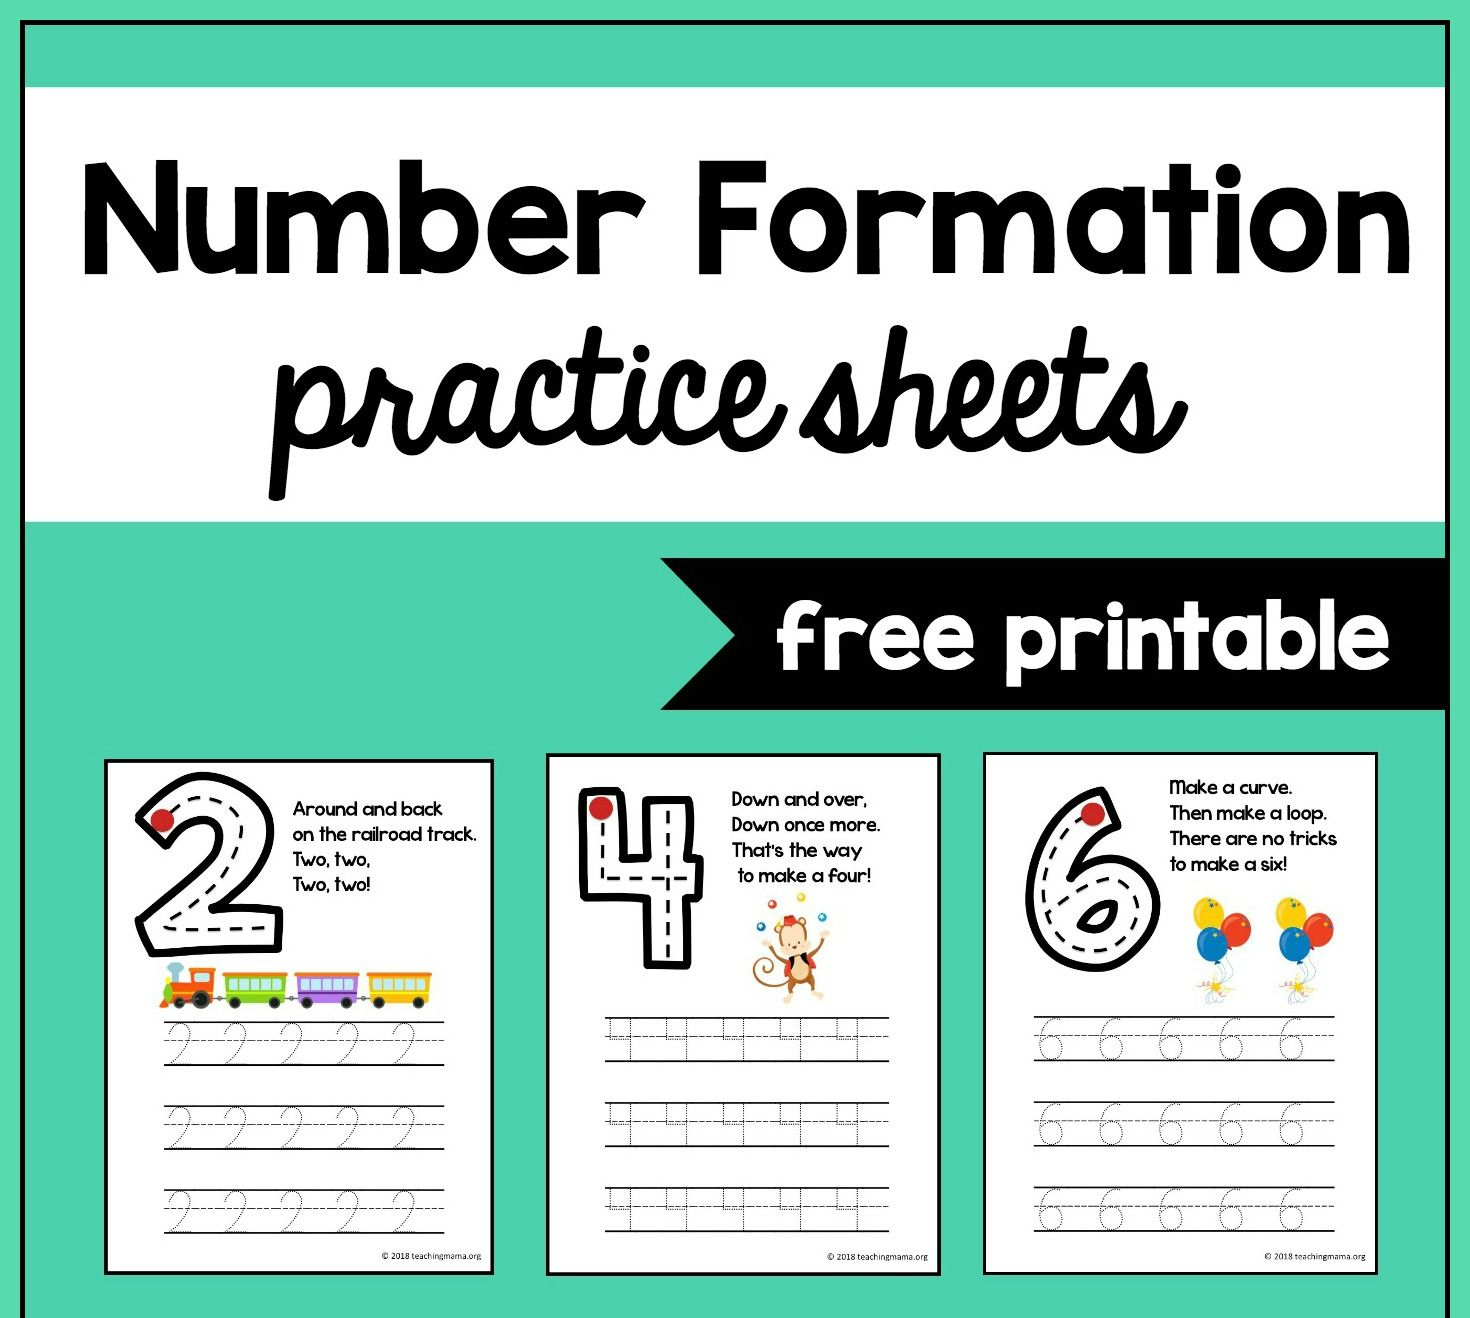 Number Formation Practice Sheets